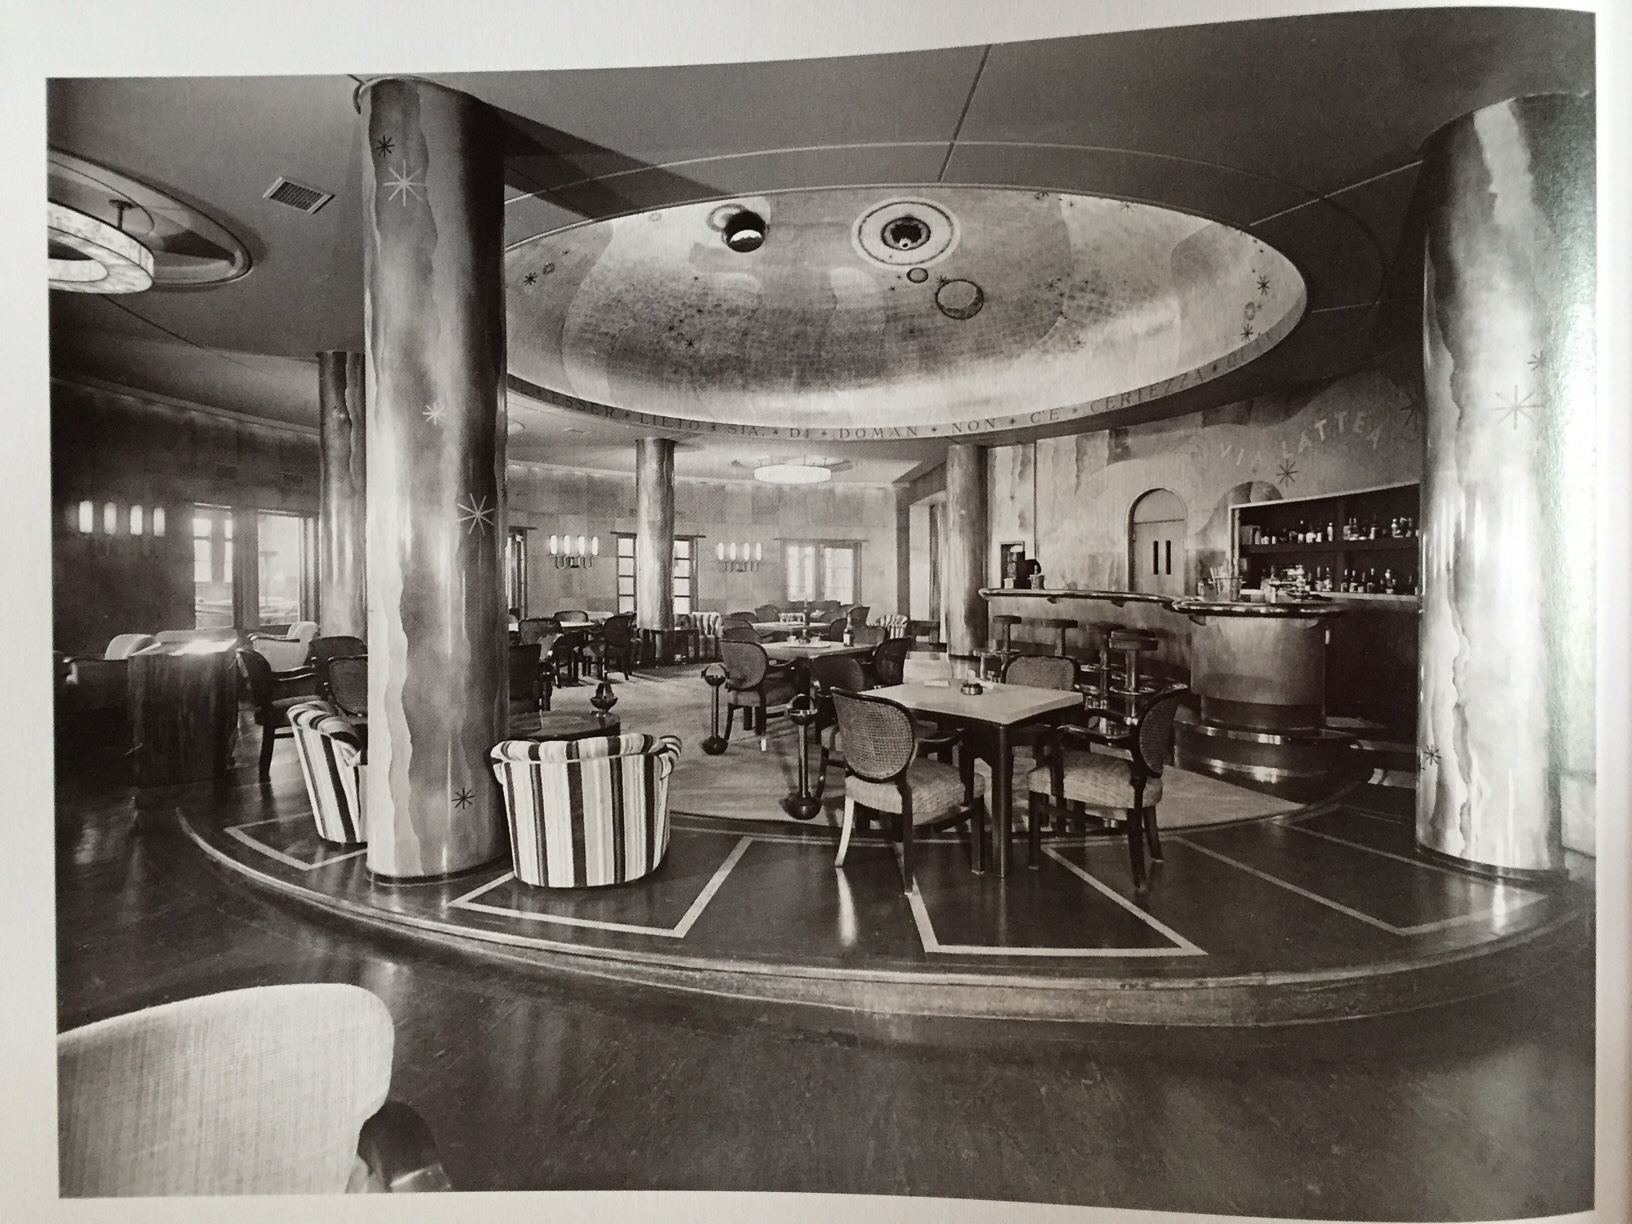 A first class lounge aboard the Transatlantic liner, the S.S. Conte di Savoia 1932